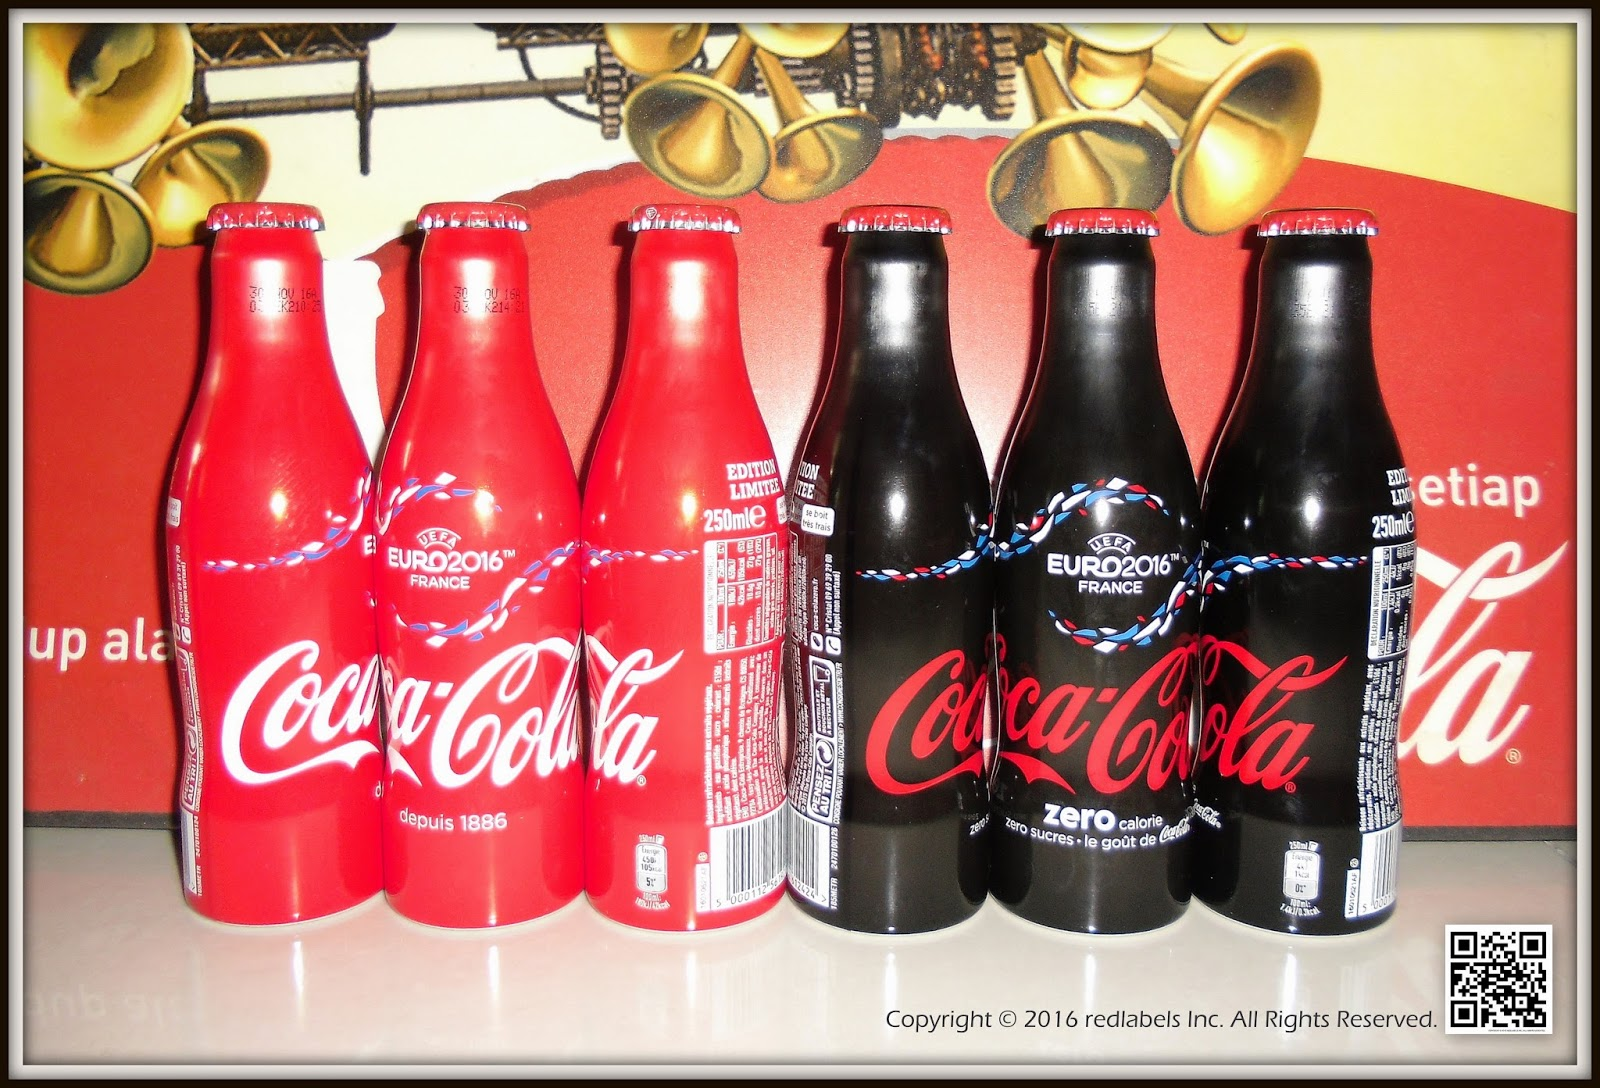 aluminum bottle collector club coca cola uefa eurocup metro aluminum bottle france 2016. Black Bedroom Furniture Sets. Home Design Ideas